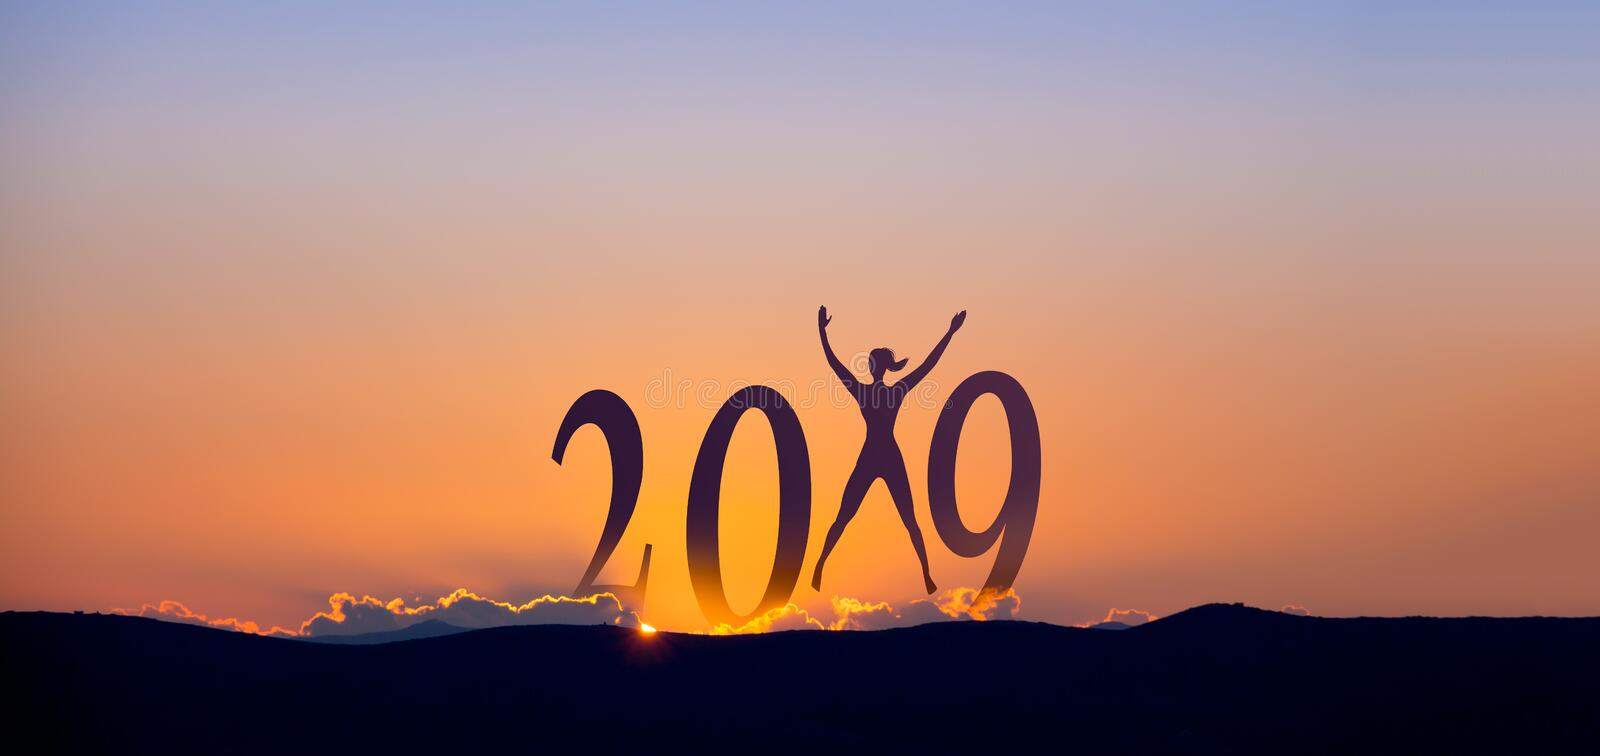 2019 On dark mountains with silhouette of a woman jumping in the air and sunrise as background. 2019 On dark mountains with silhouette of a woman jumping in the royalty free stock photos